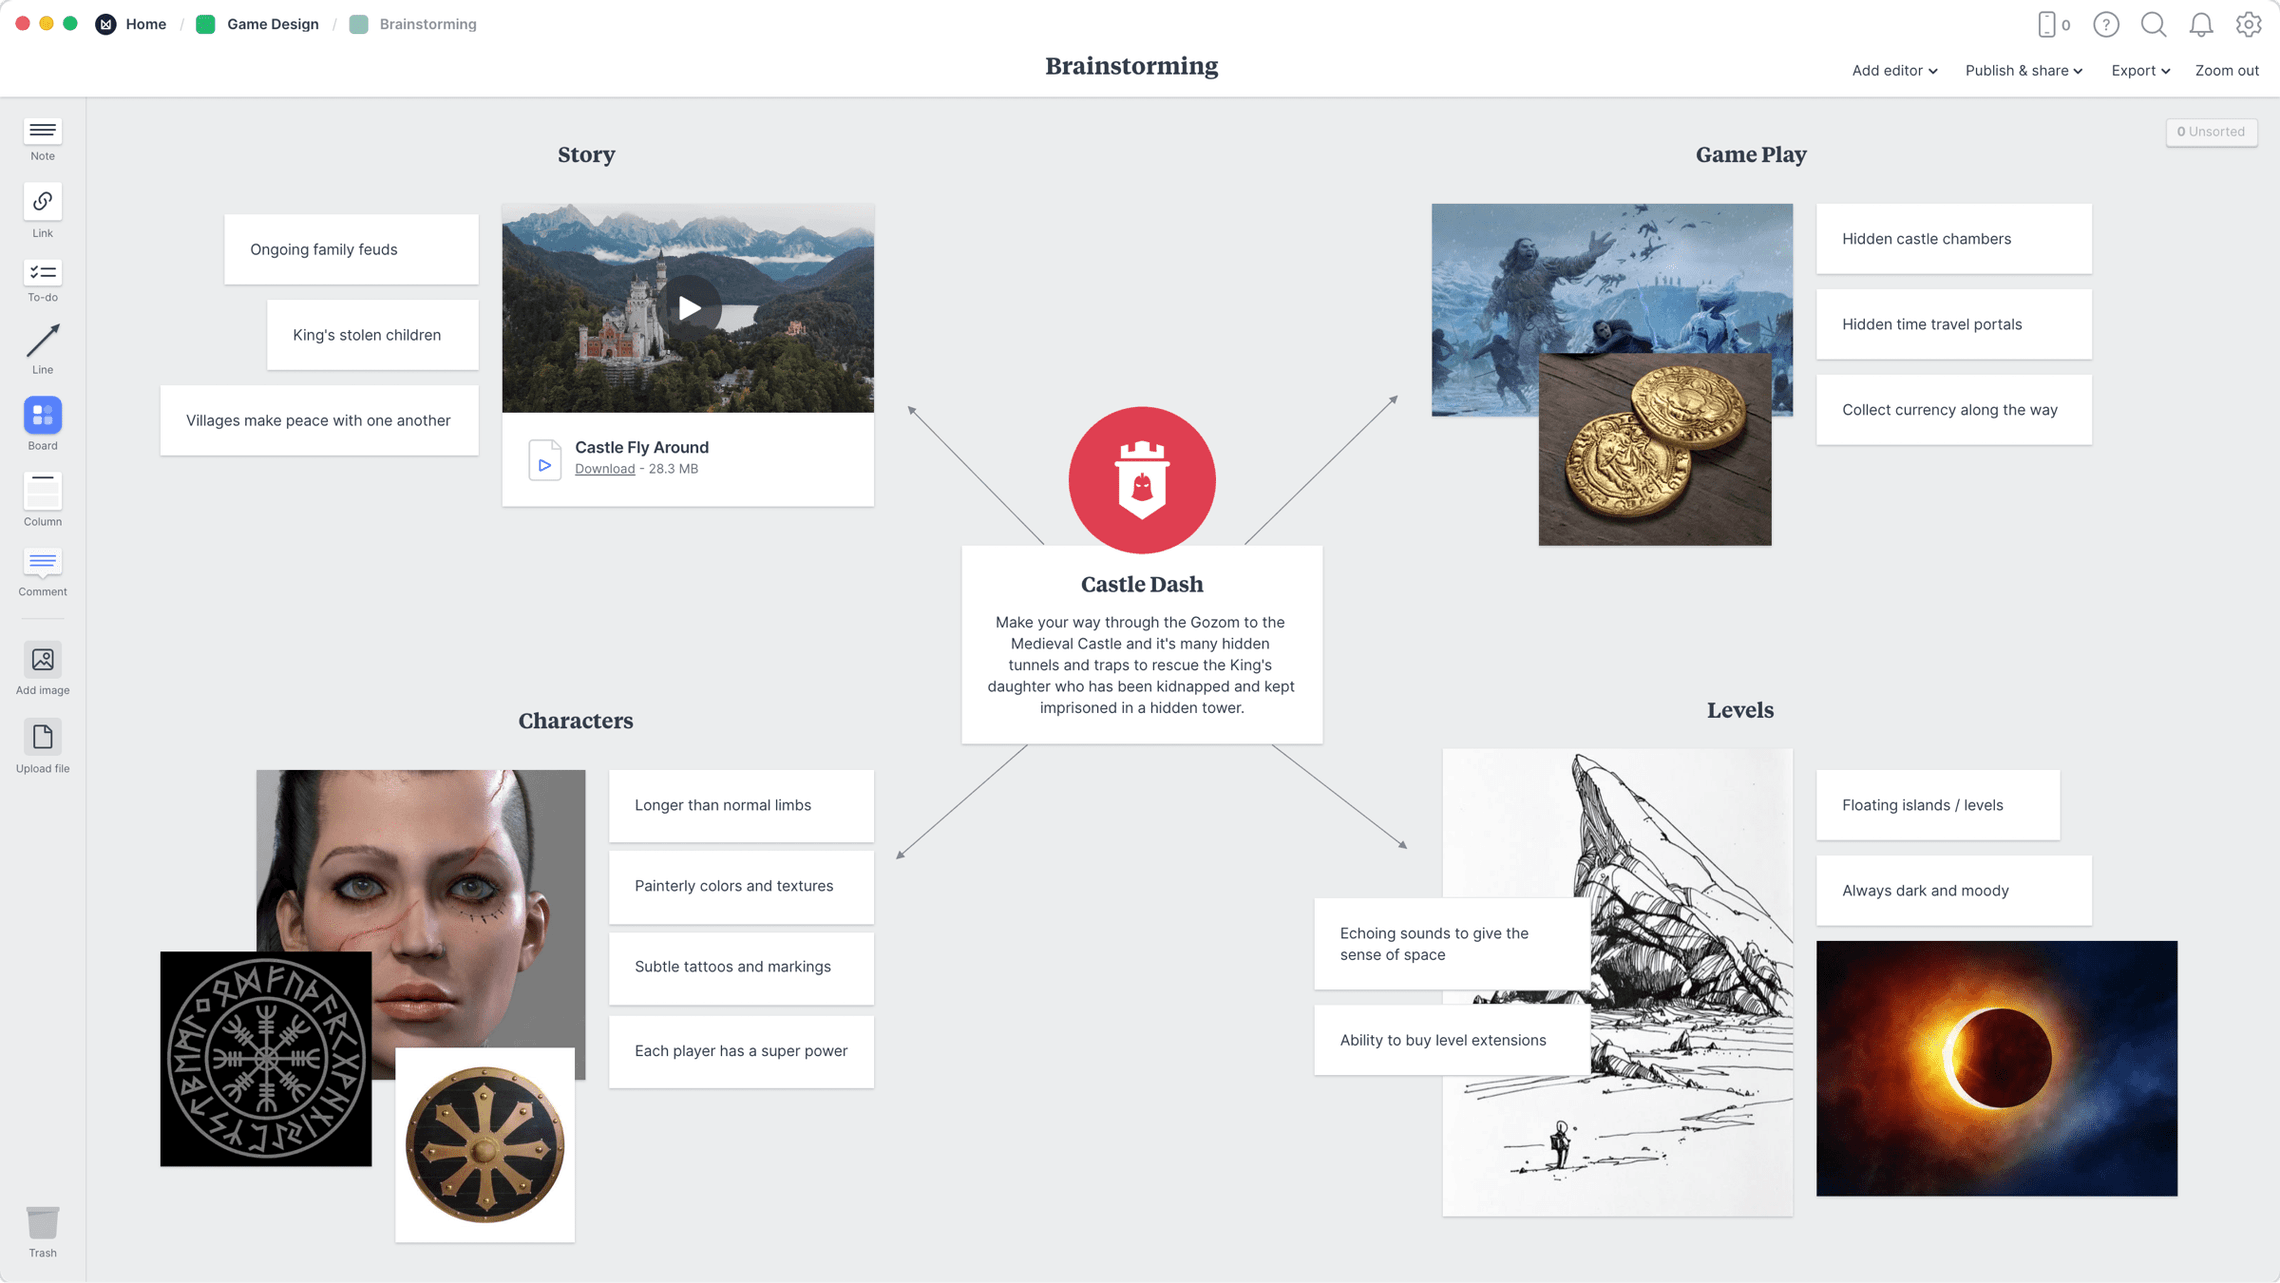 Game Design Brainstorming Template, within the Milanote app